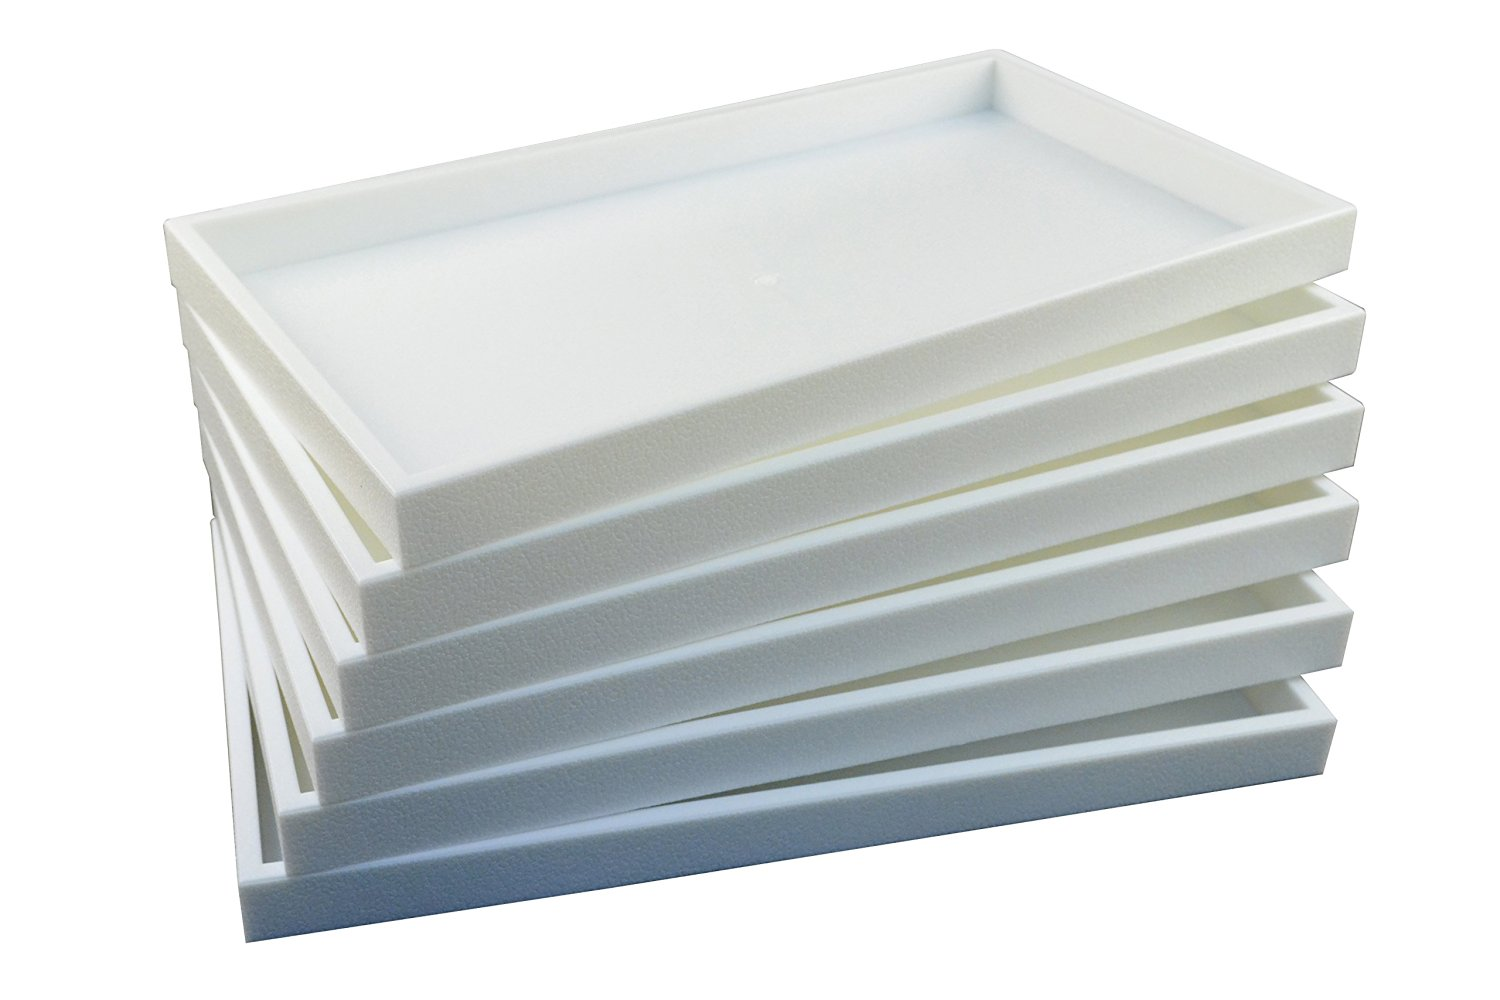 """Regal Pak ® 6-Piece 1-Inch Deep White Full Size Plastic Stackable Jewelry Tray 14 3/4"""" X 8 1/4"""" X 1""""H"""